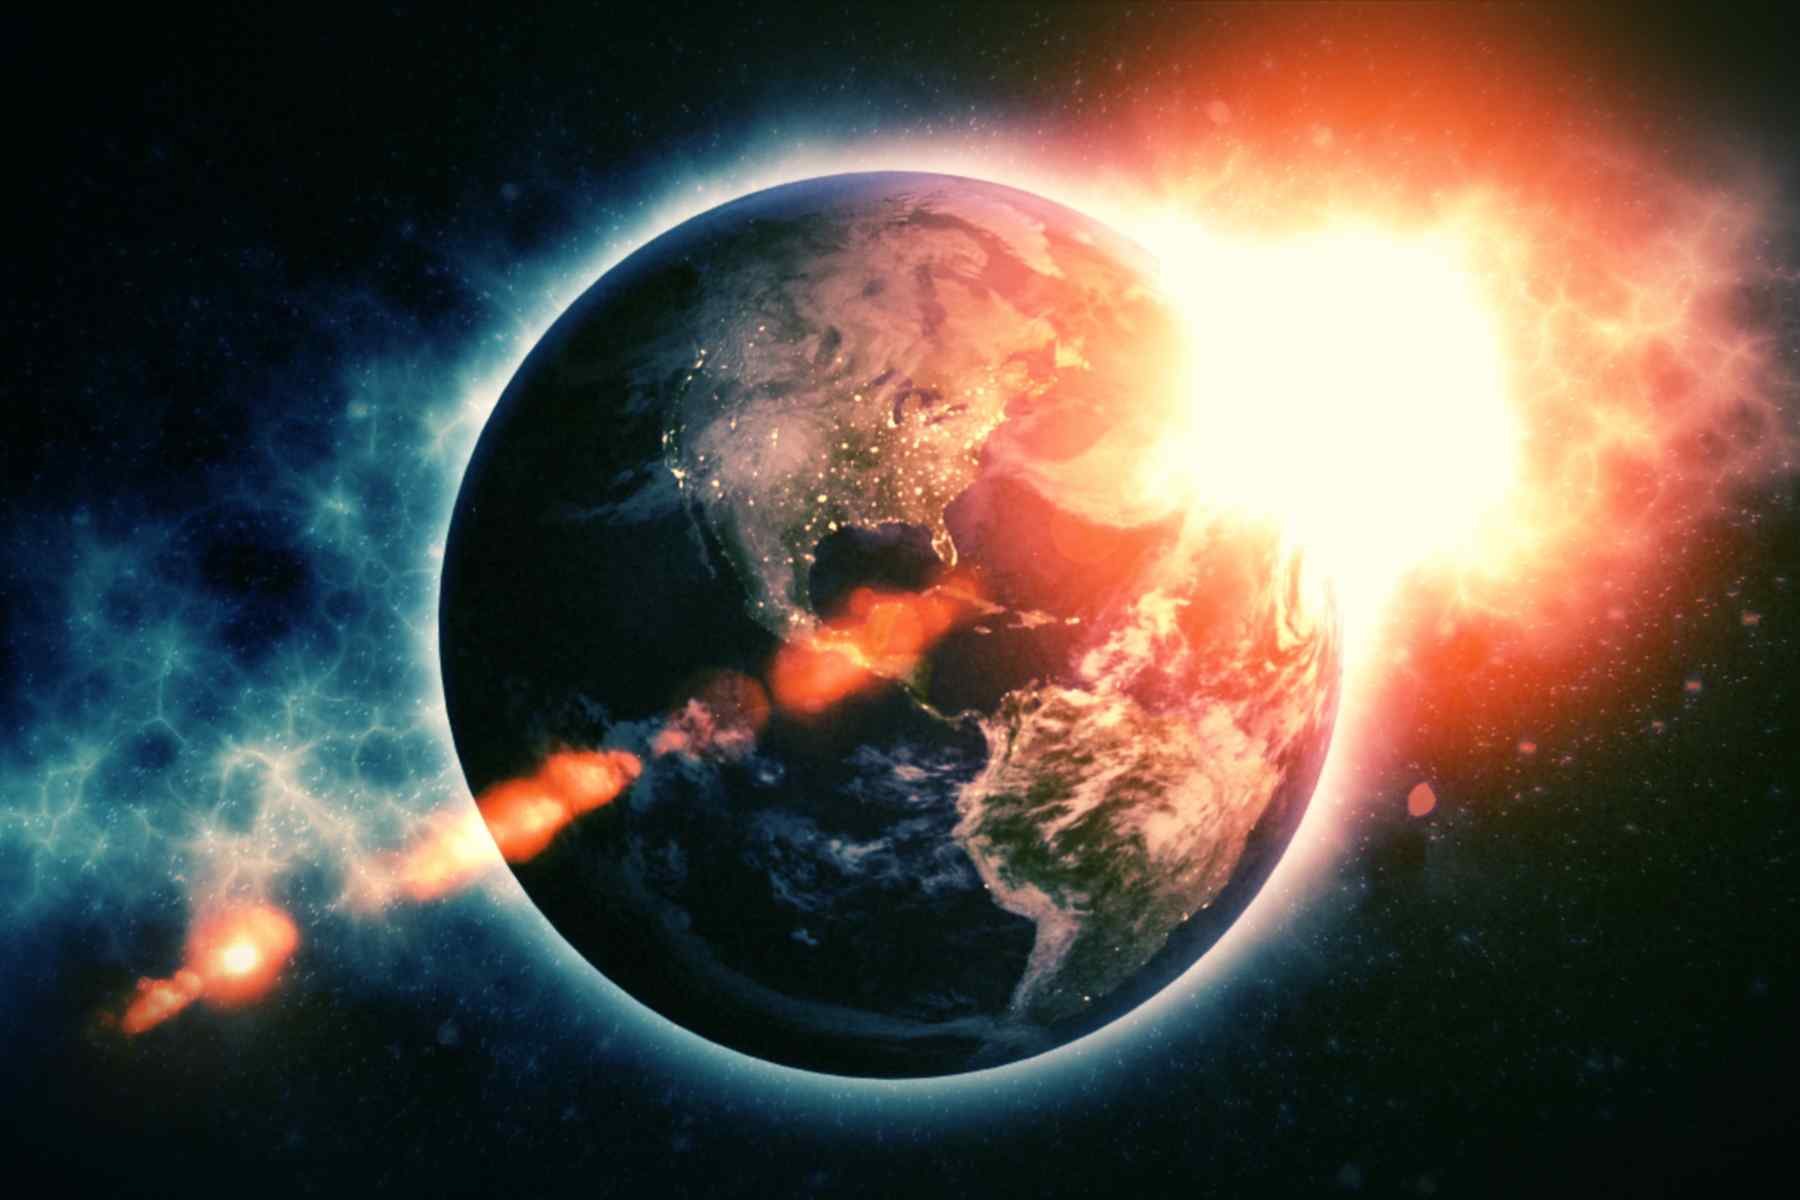 [2021] What will happen if Oxygen doubled on Earth?